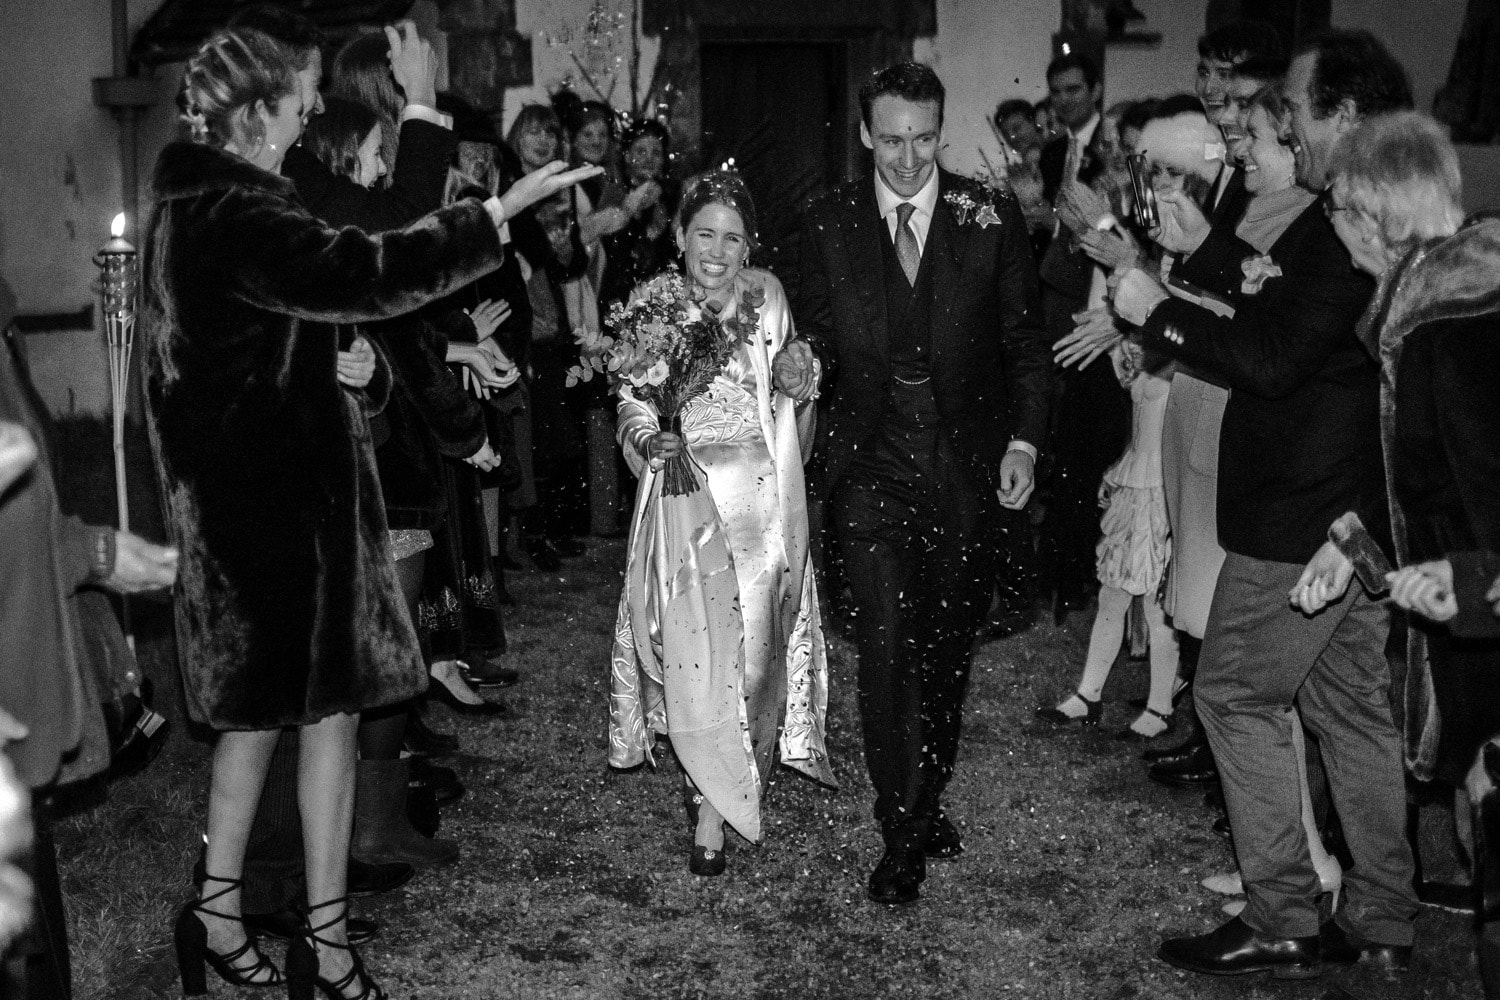 Bride and groom leave church in dark